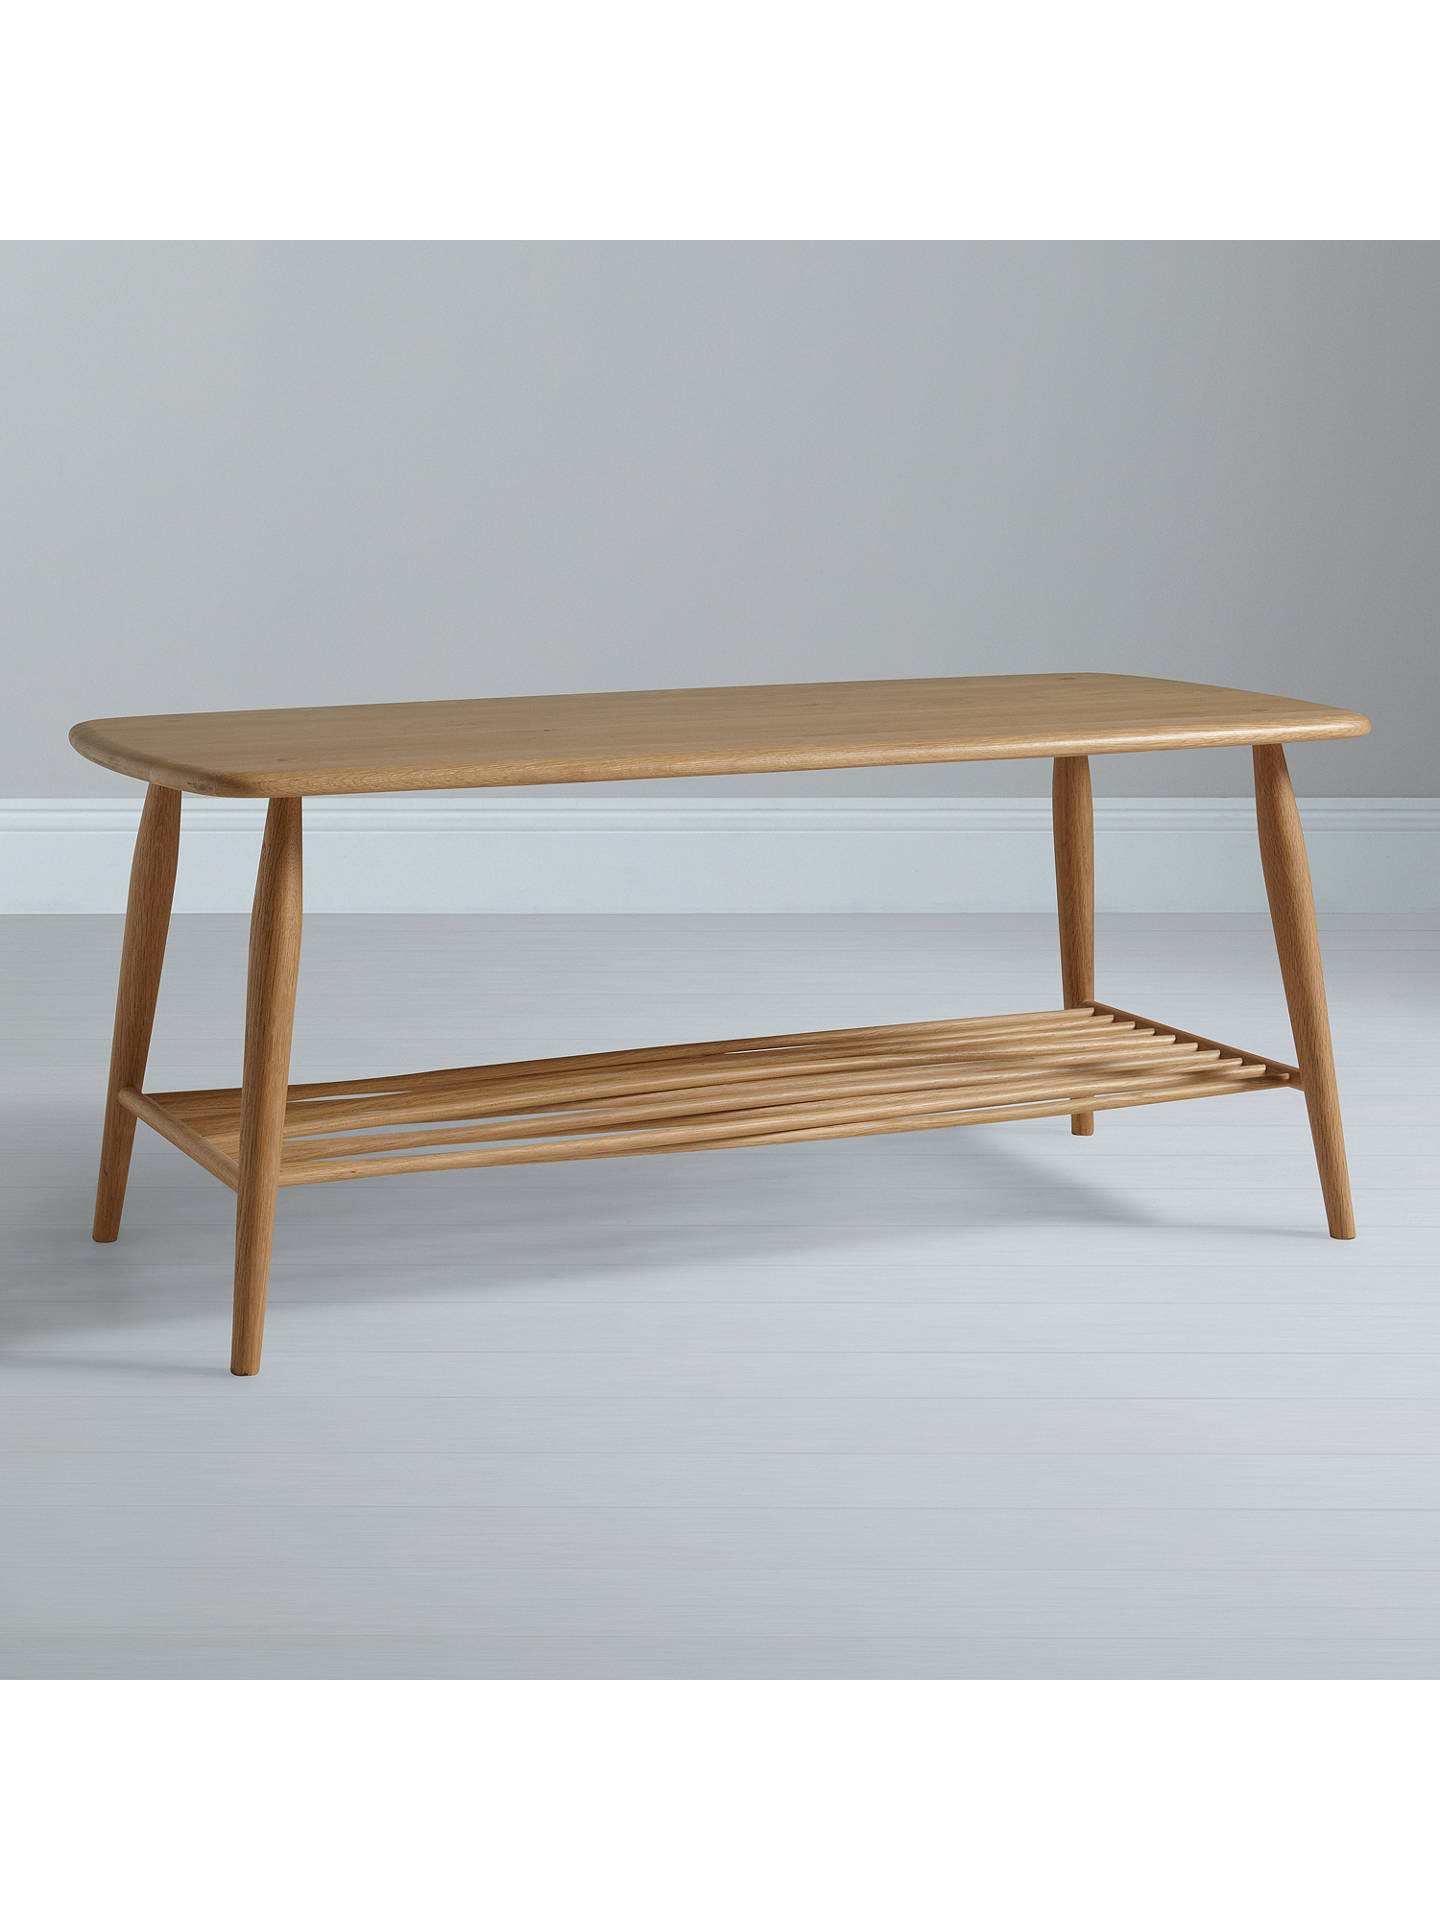 Surprising Ercol For John Lewis Chiltern Coffee Table Oak At John Camellatalisay Diy Chair Ideas Camellatalisaycom